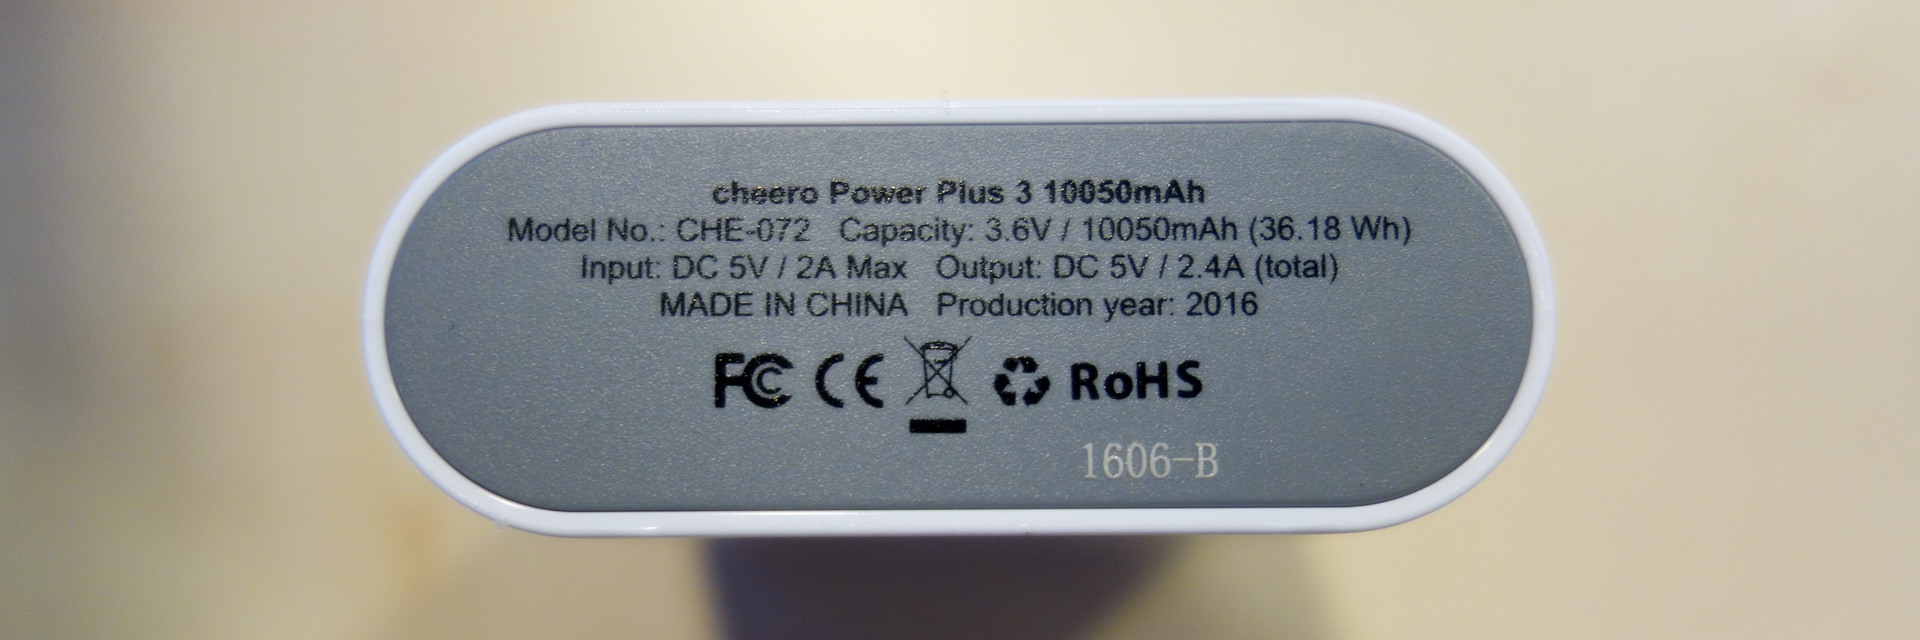 cheero Power Plus 3 10050mAh_5